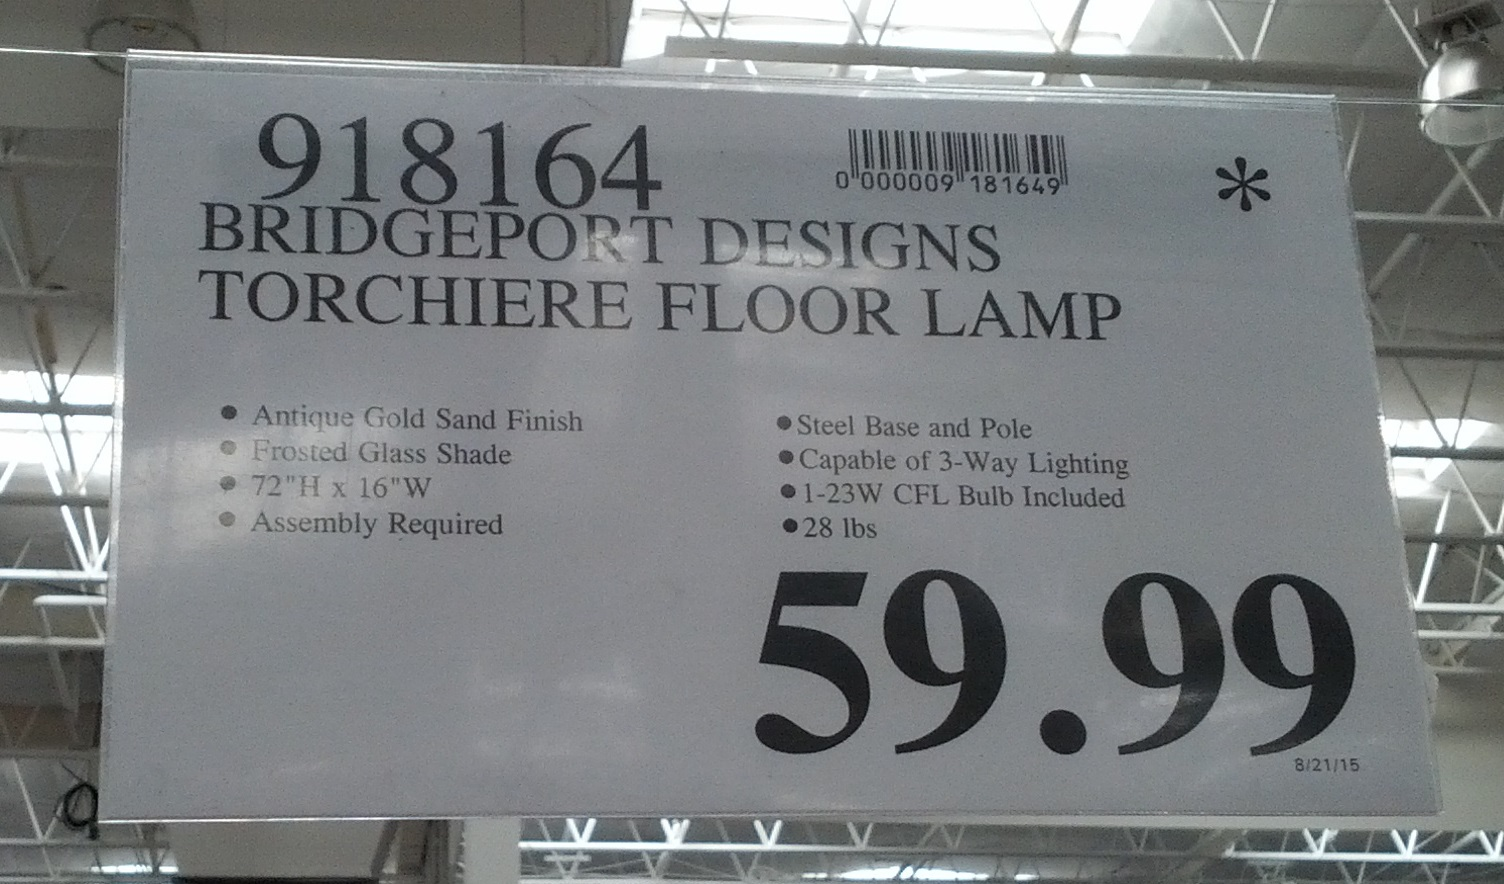 Deal For The Bridgeport Designs Torchiere Floor Lamp At Costco